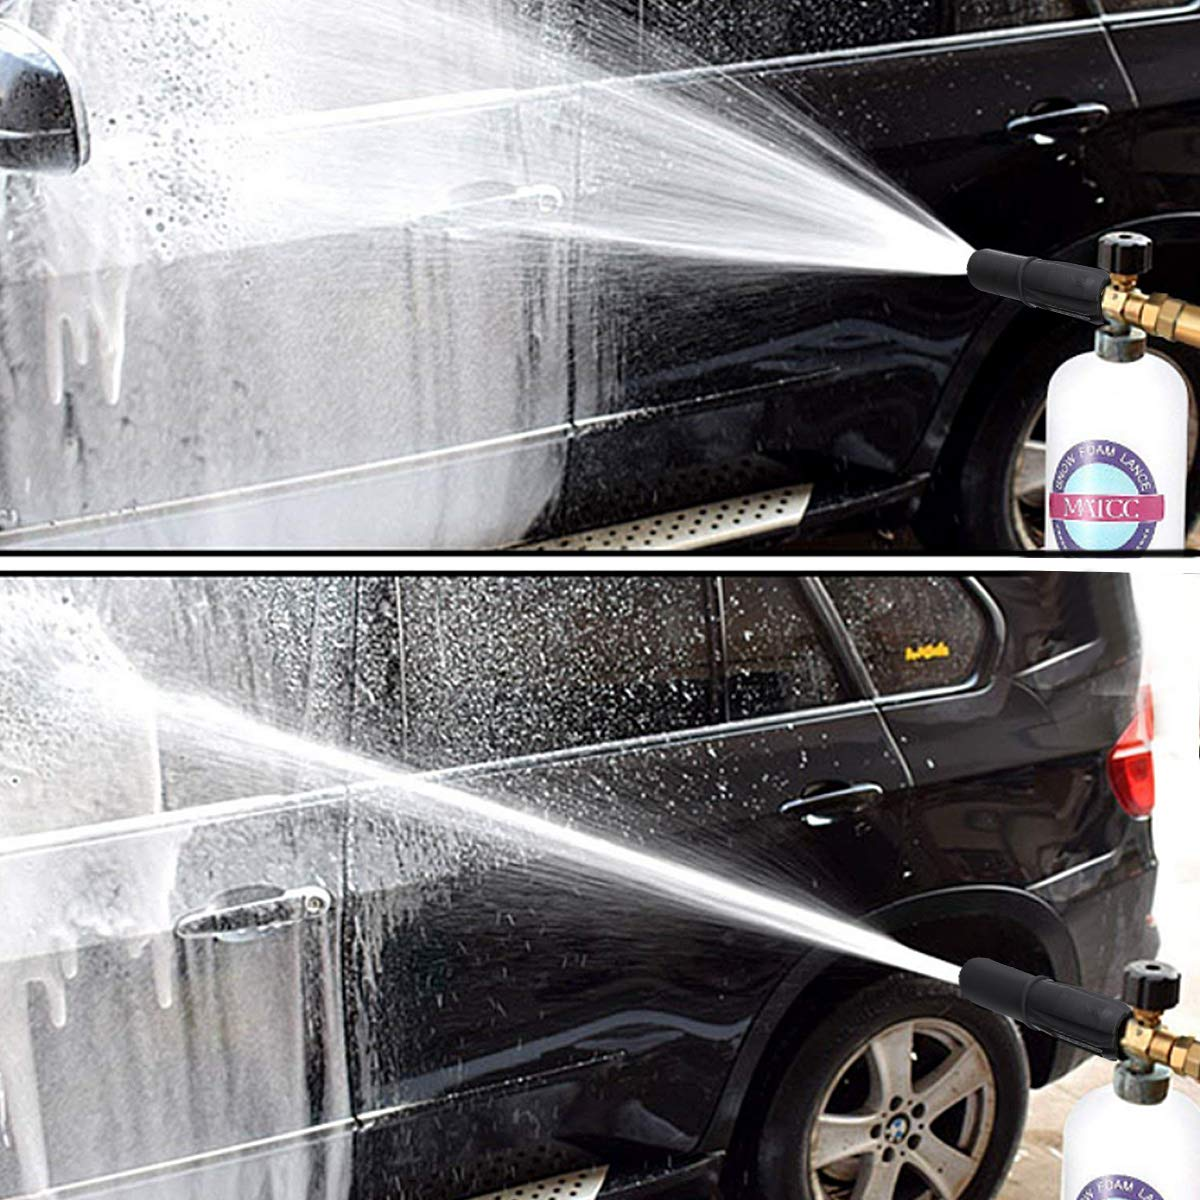 MATCC Foam Cannon II Foam Nozzle Pressure Washer Jet Wash with 1/4'' Quick Connector Foam Blaster 0.22 Gallon Bottle Improved Snow Foam Lance by MATCC (Image #7)